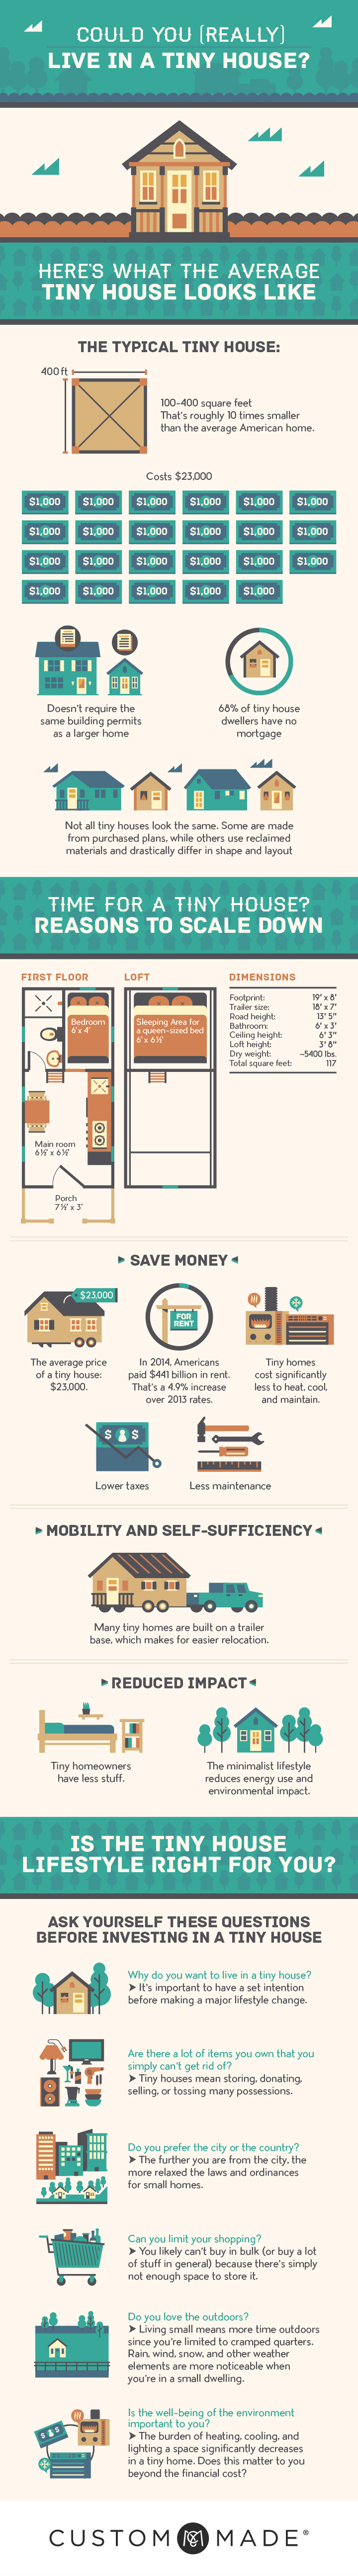 The Tiny House Movement - 3 Great Infographics